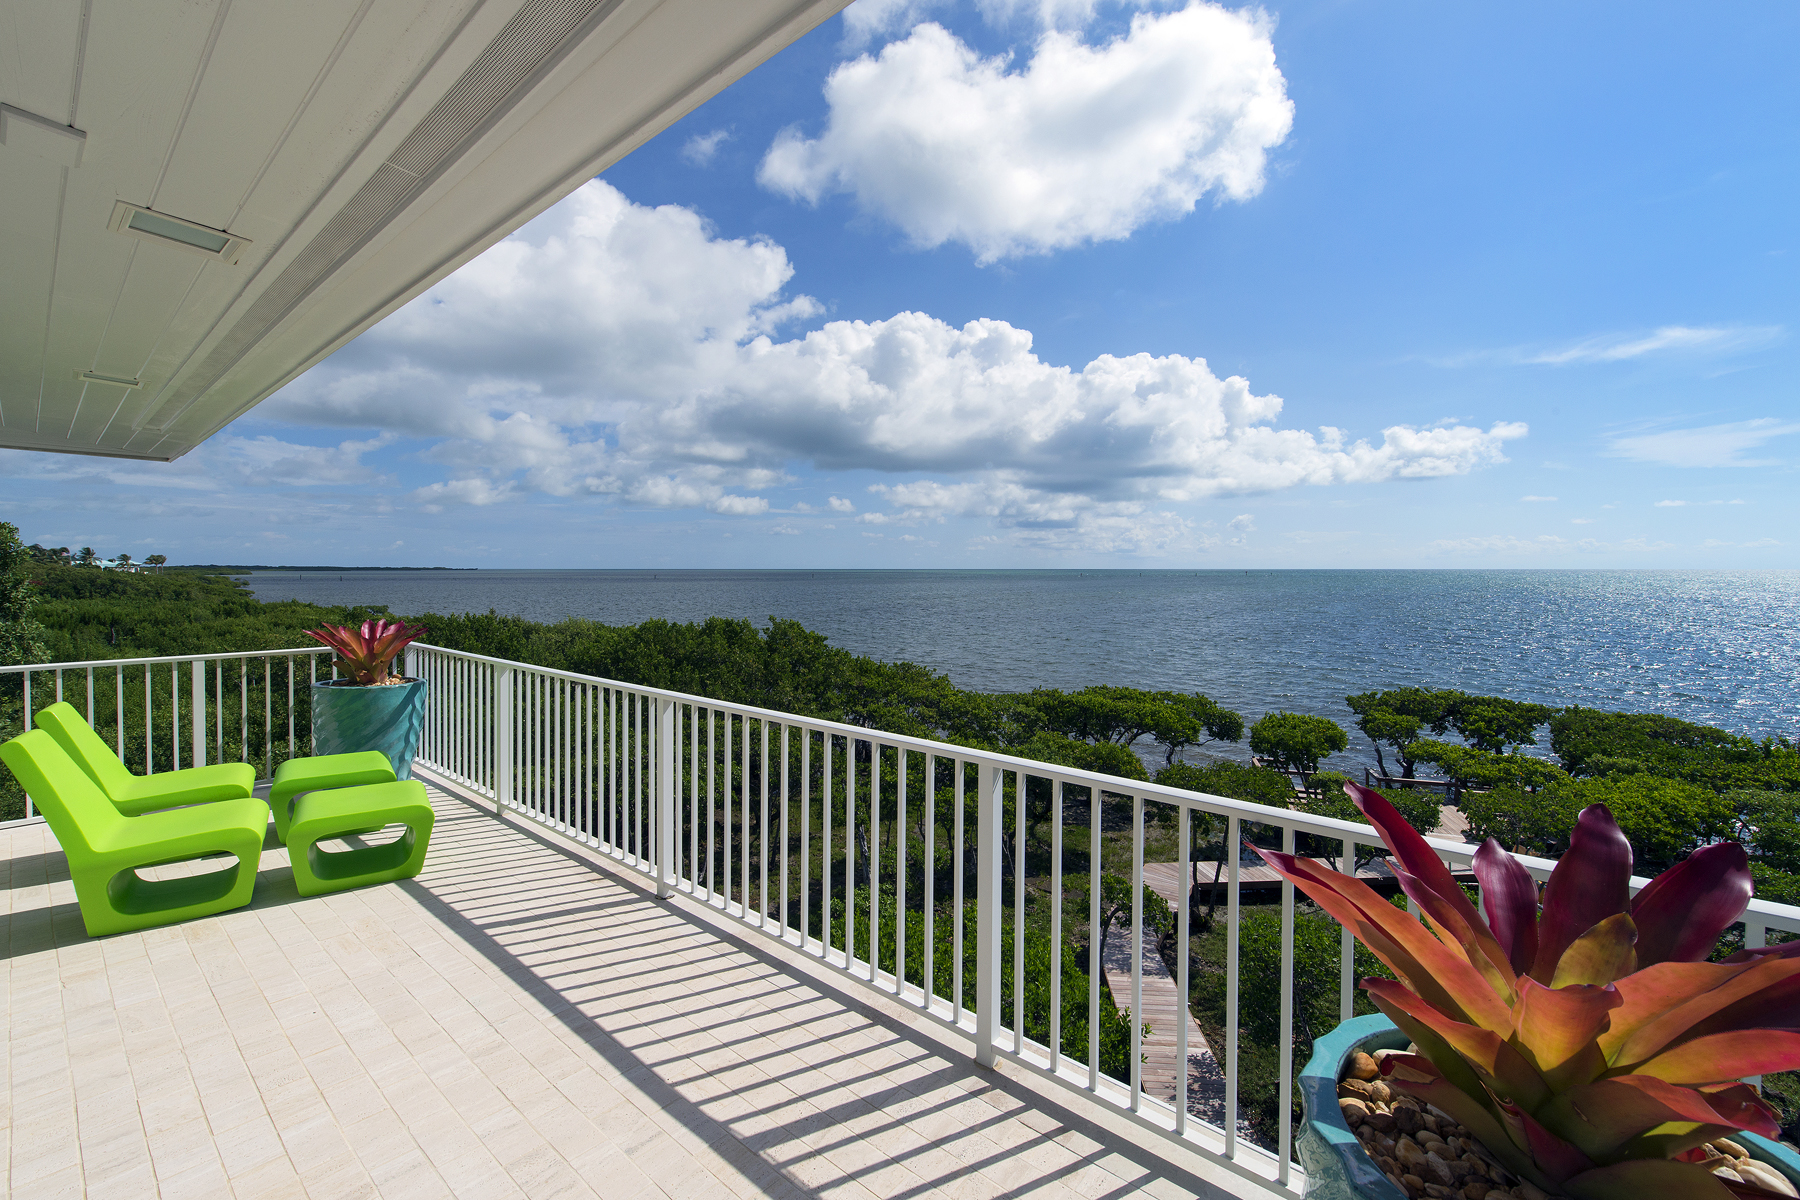 Single Family Home for Sale at Captivating Ocean Front Views at Ocean Reef 15 Sunrise Cay Drive Key Largo, Florida 33037 United States